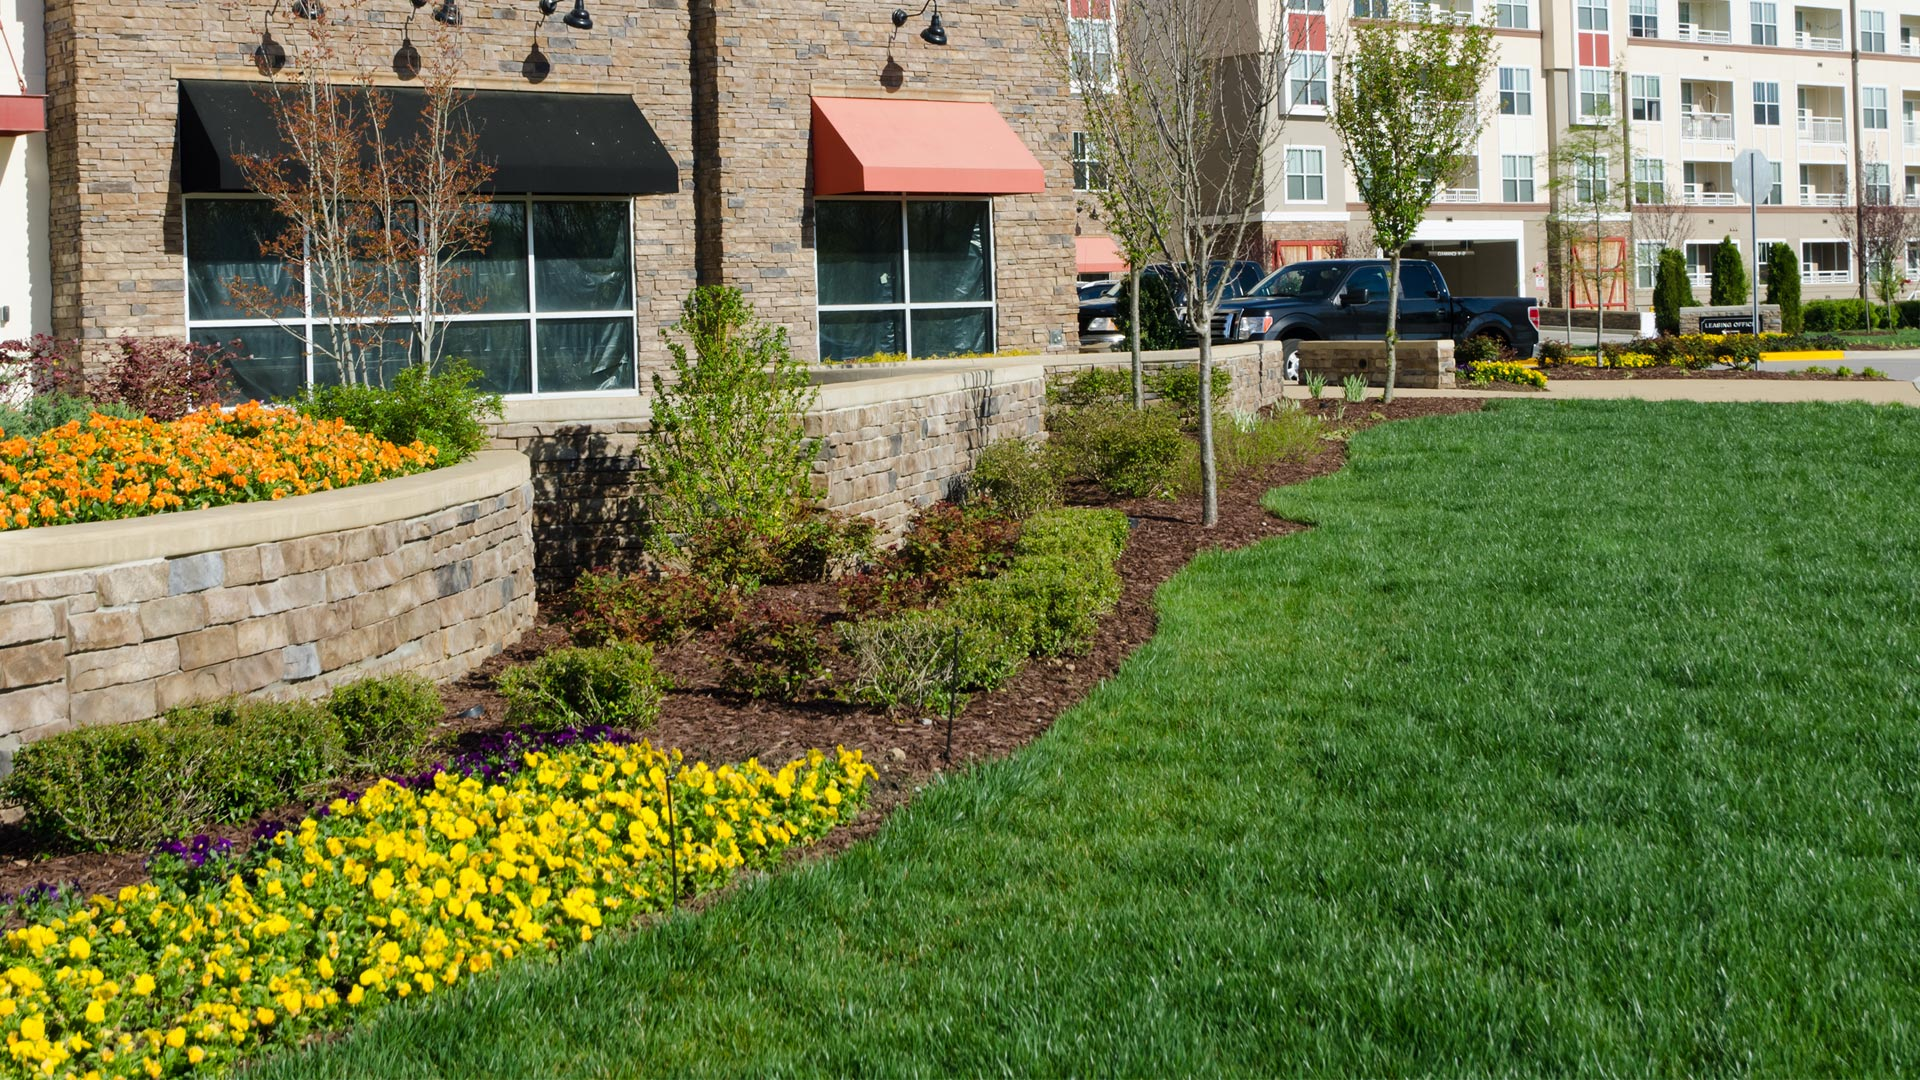 Recently mowed and well maintained lawn at a commercial property in Allentown, %%state%.